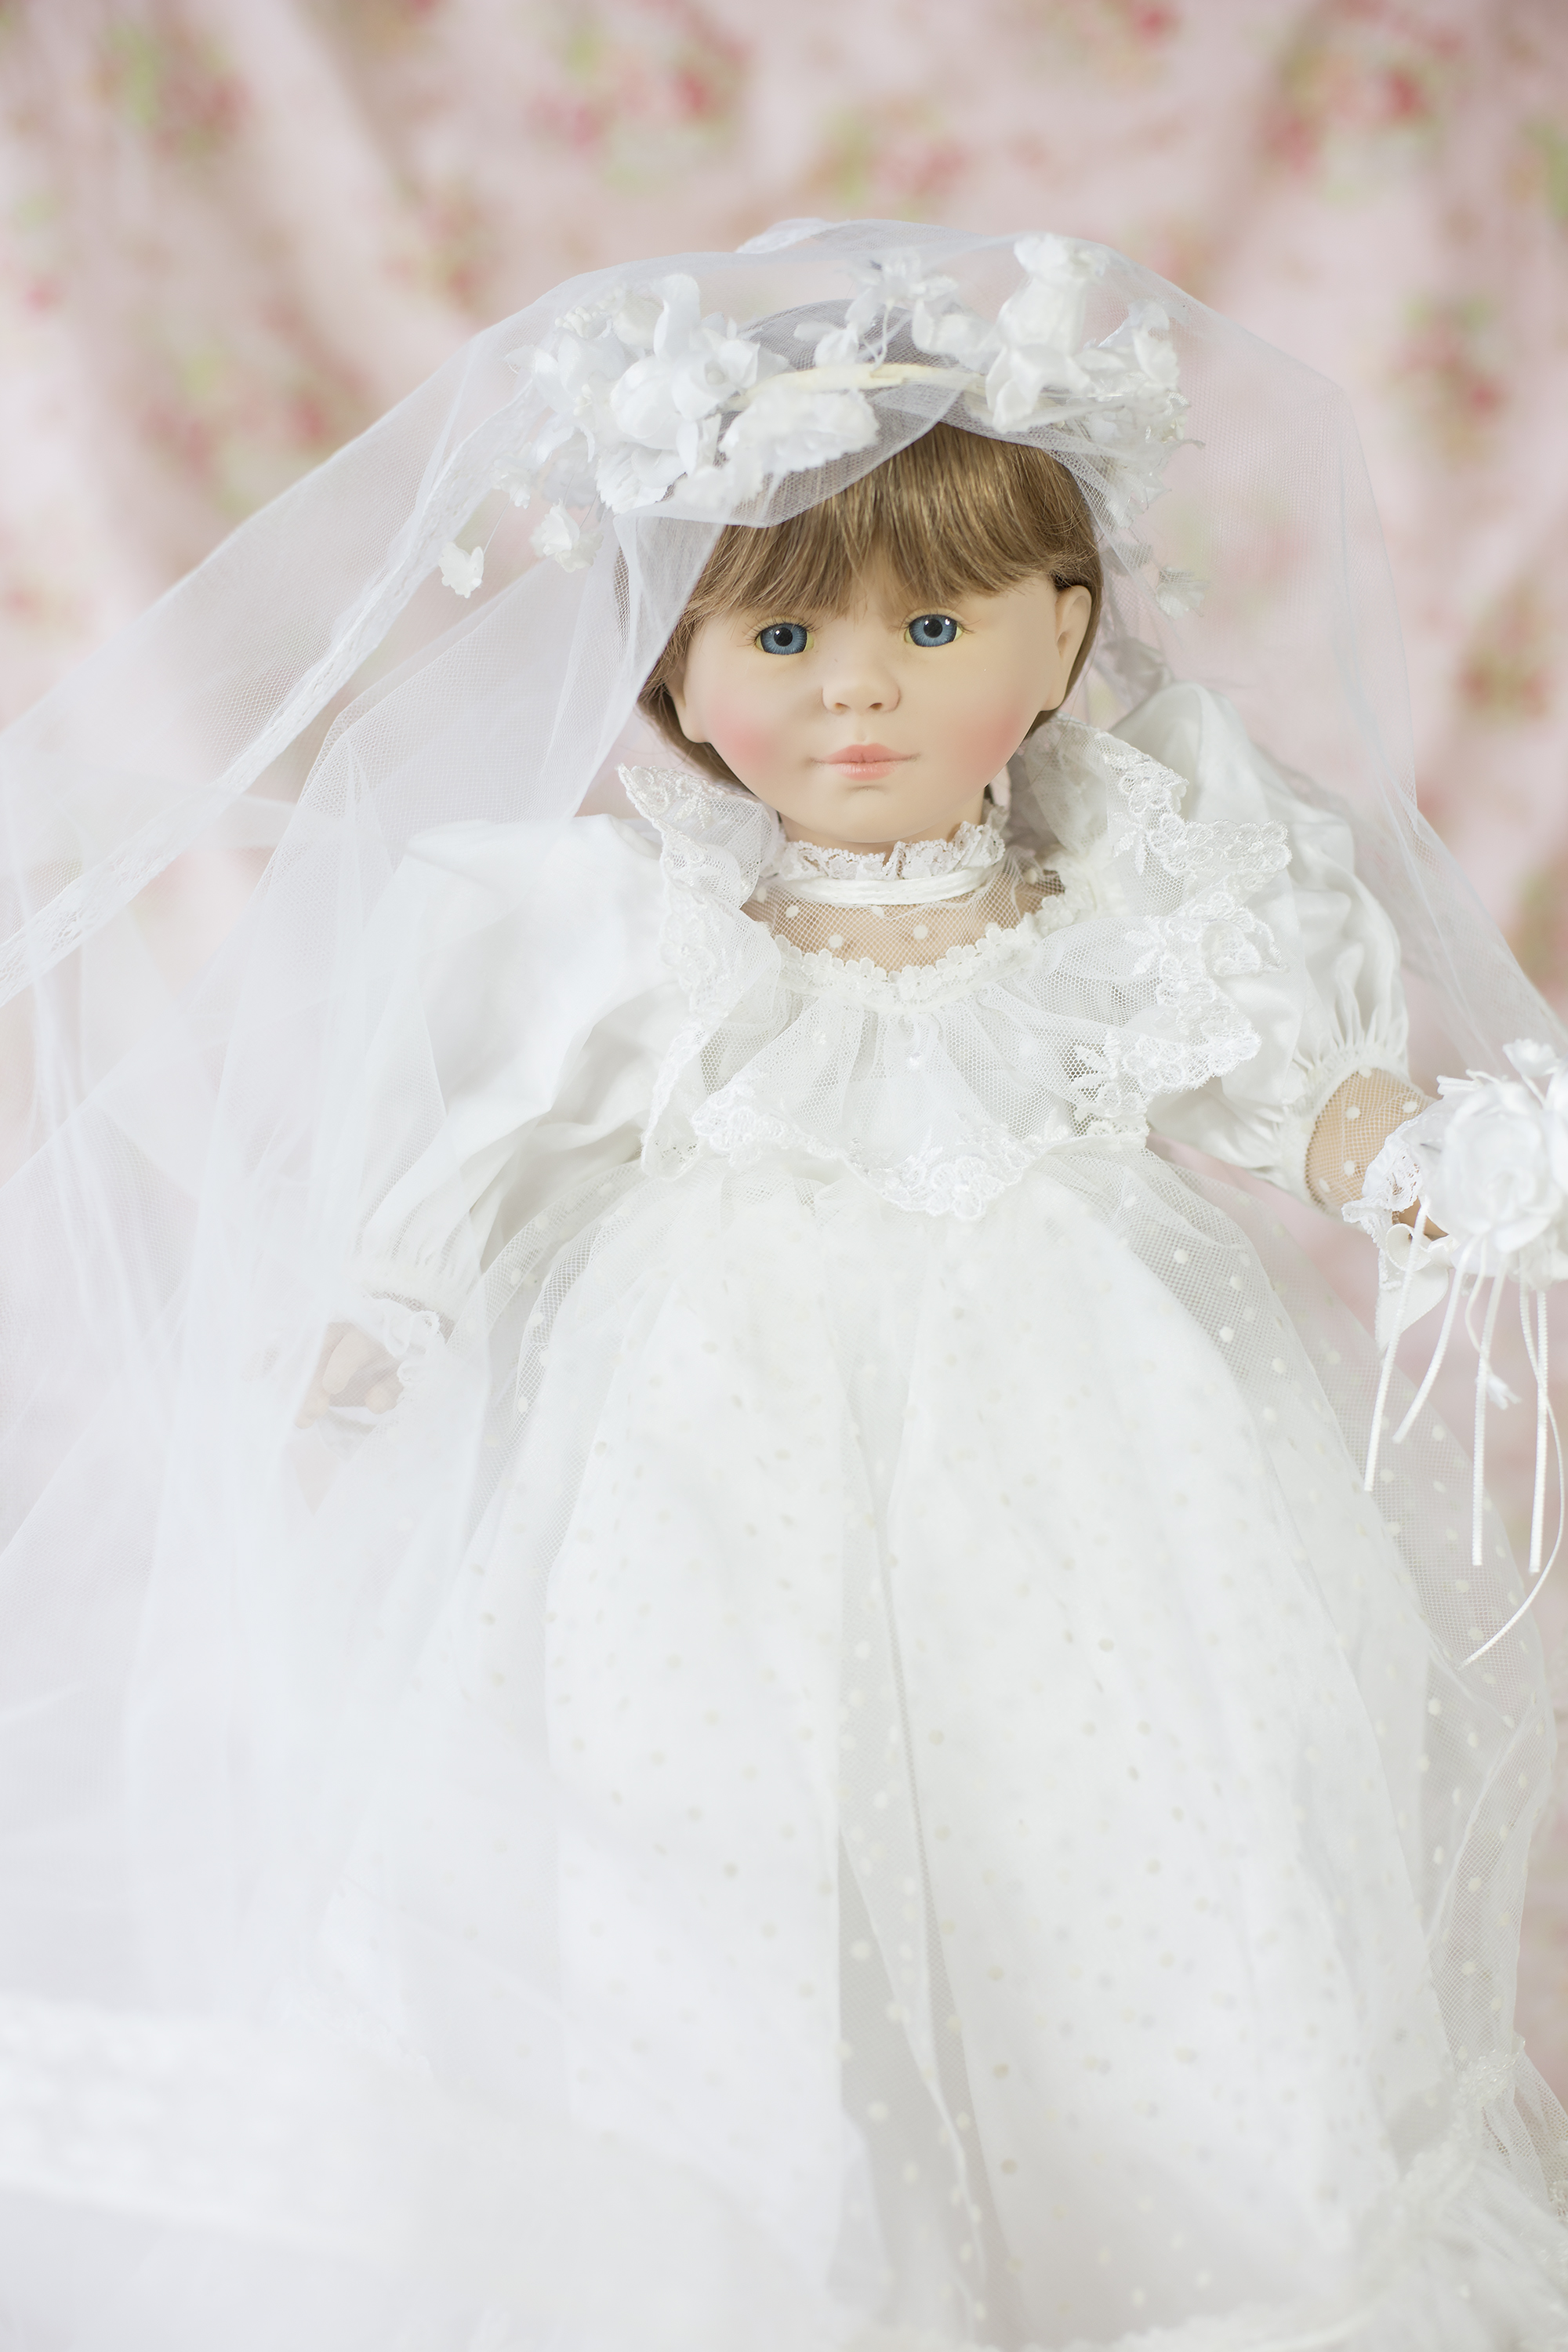 Corolle Doll. Angelique Bride Doll 1992, 508 Limited Edition signed by Catherine Reflabat. This doll has lovely brown real human hair and is beautifully detailed with a train that is approximately 4 feet long.